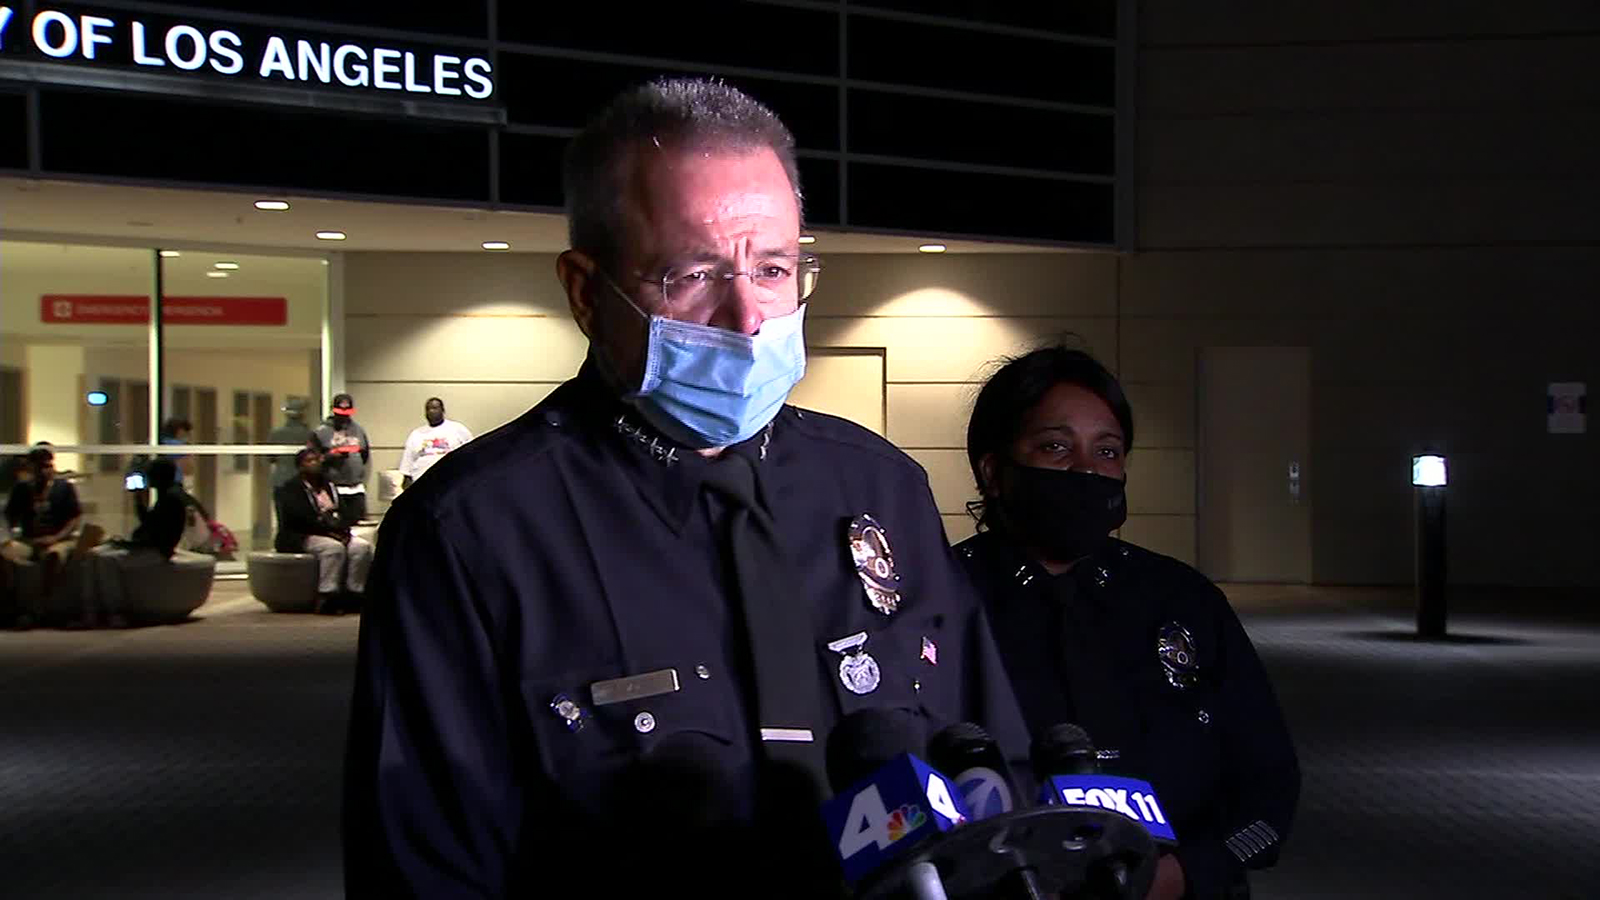 LAPD officer injured after shooting at Harbor Station